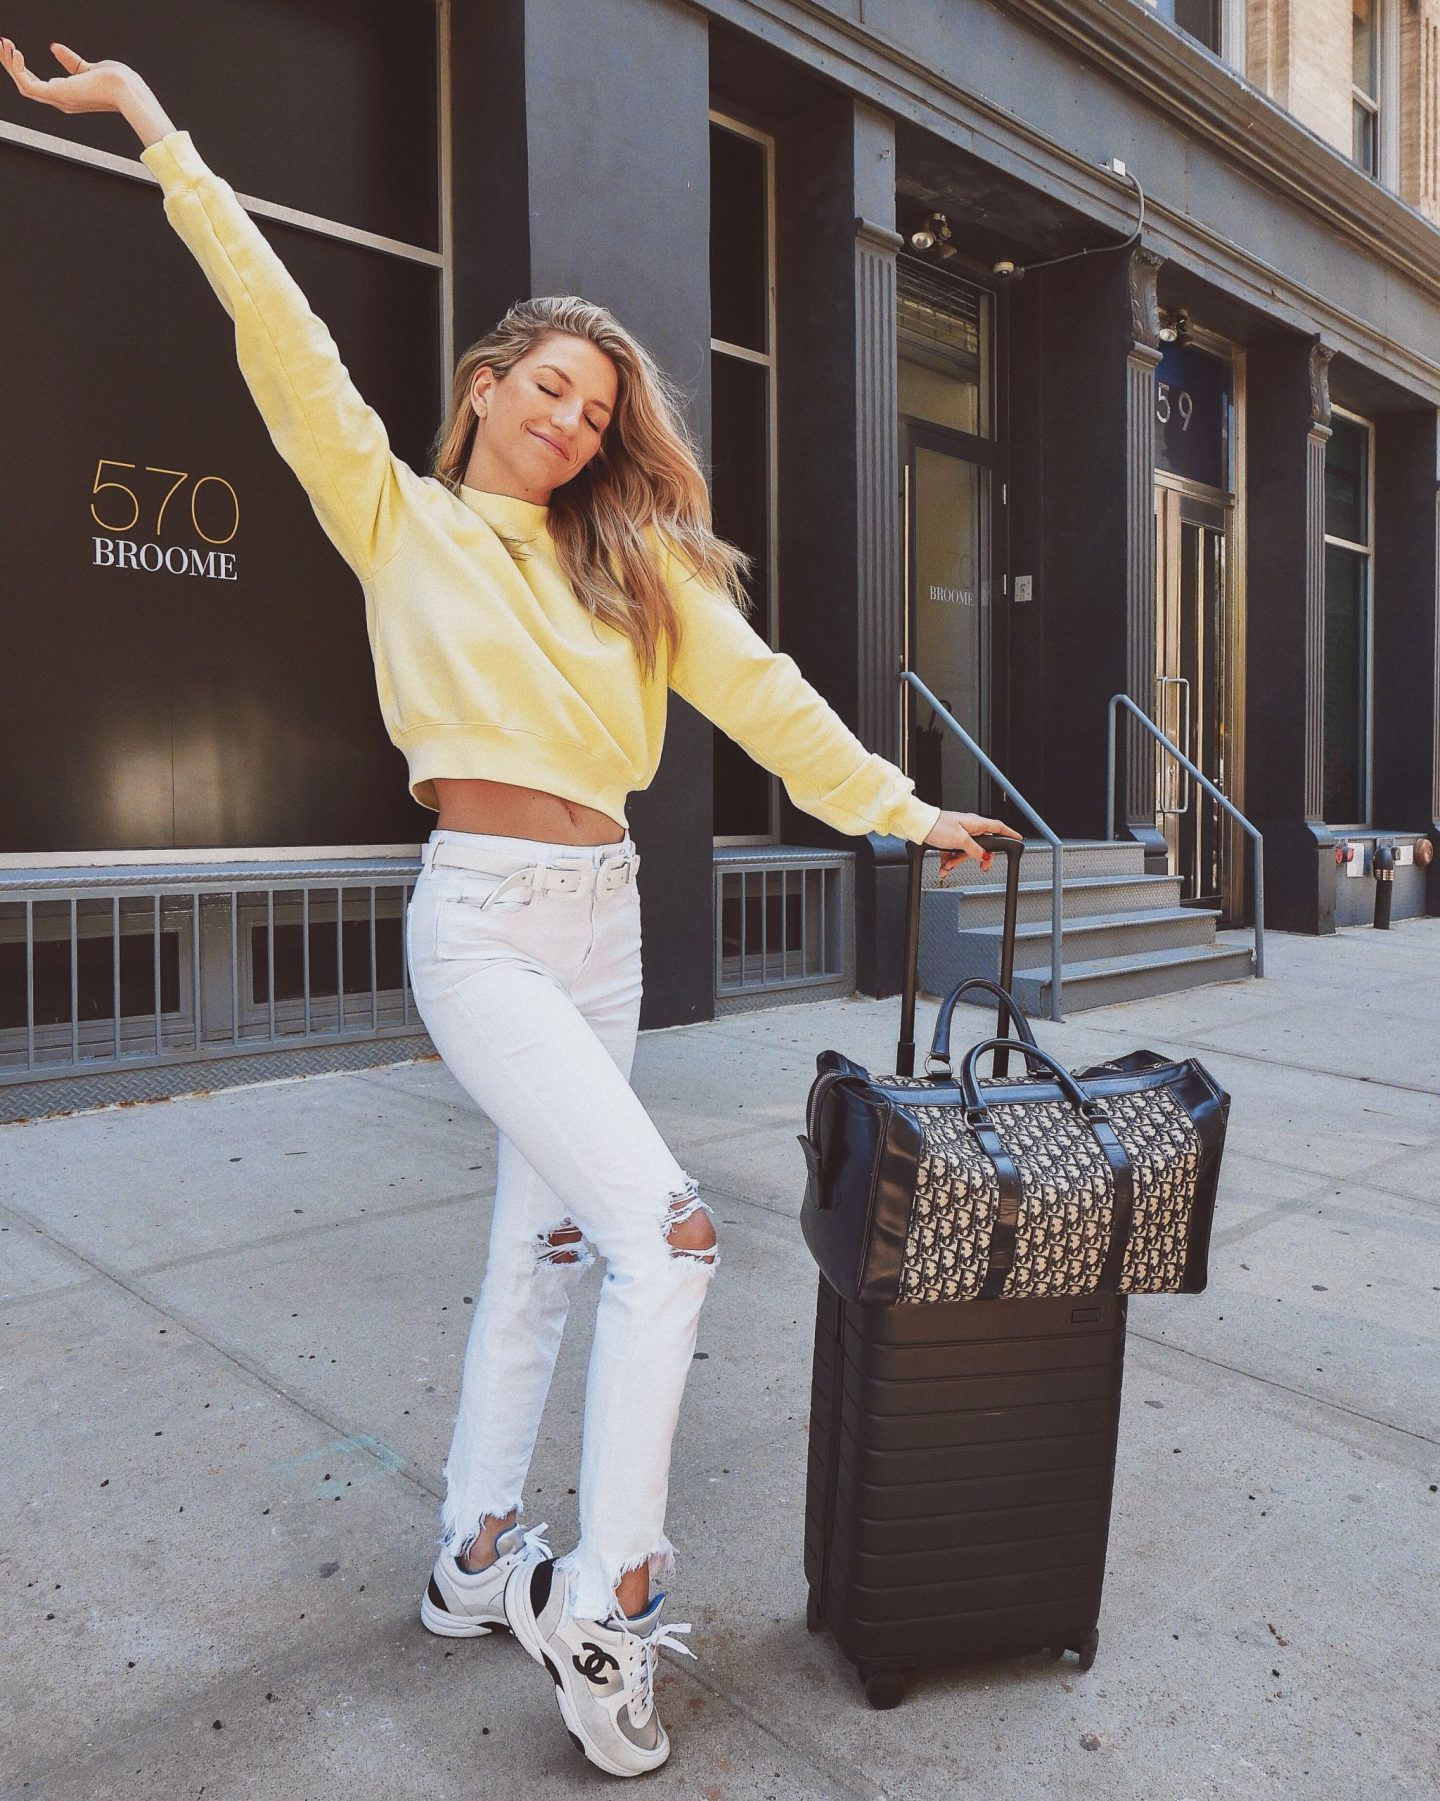 Cassandra DiMicco, Cass DiMicco, Dressed For Dreams, NYC, New York City, New York, Street Style NYC, Street Style 2018, NYC Street Style Street Style Outfits, 2018 Trends, NYC Fashion Blogger, intermix, intermix yellow sweatshirt, yellow cropped sweatshirt, l'agence jeans, white l'agence jeans, Chanel sneakers, dad sneakers, 2018 trend, Dior duffle bag, away luggage